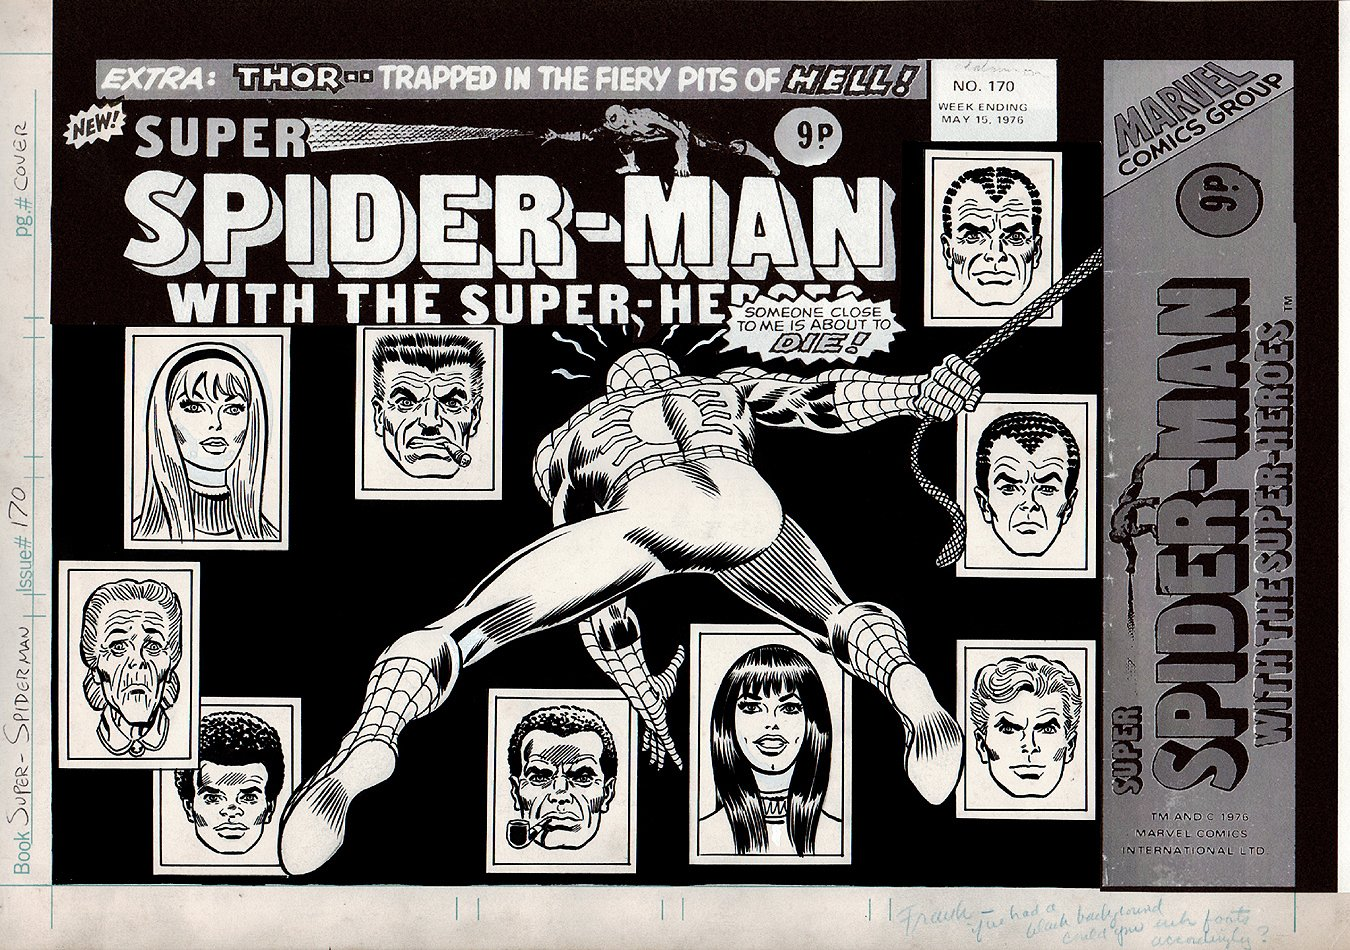 British Amazing Spider-Man #121 Published Cover (Super Spider-Man #170) 1976